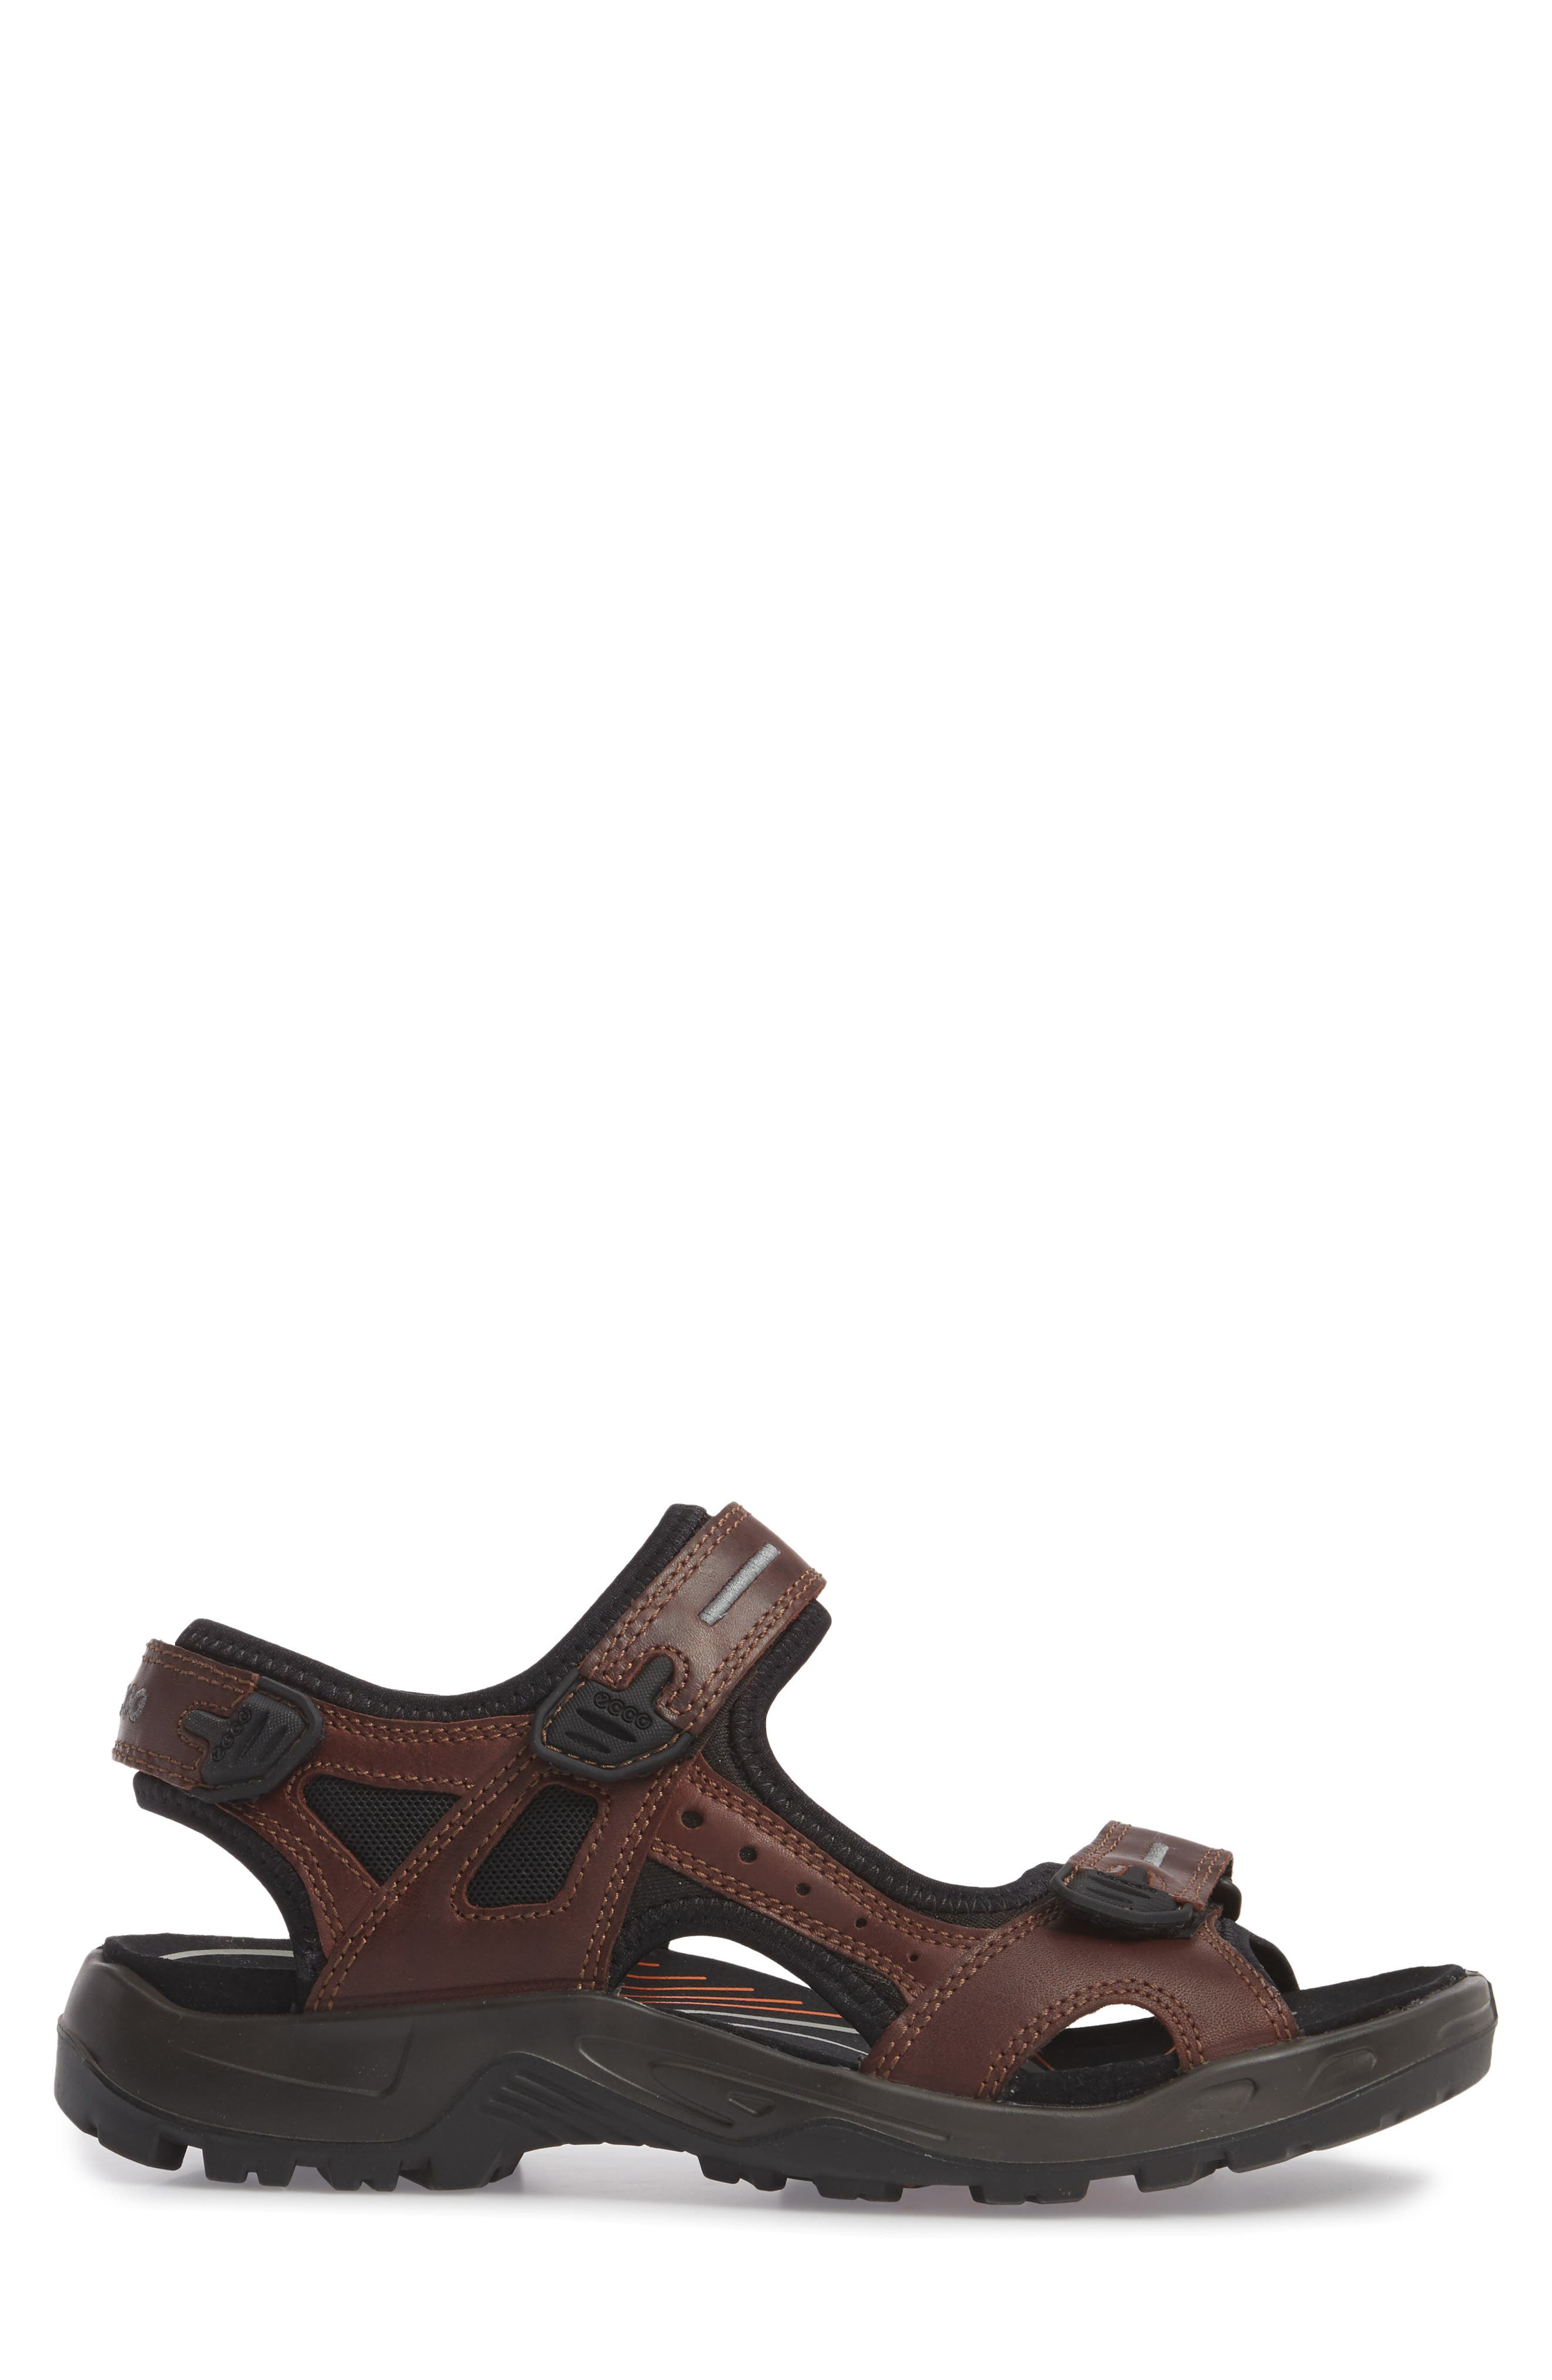 Offroad Sport Sandal,                             Alternate thumbnail 3, color,                             Brandy Leather